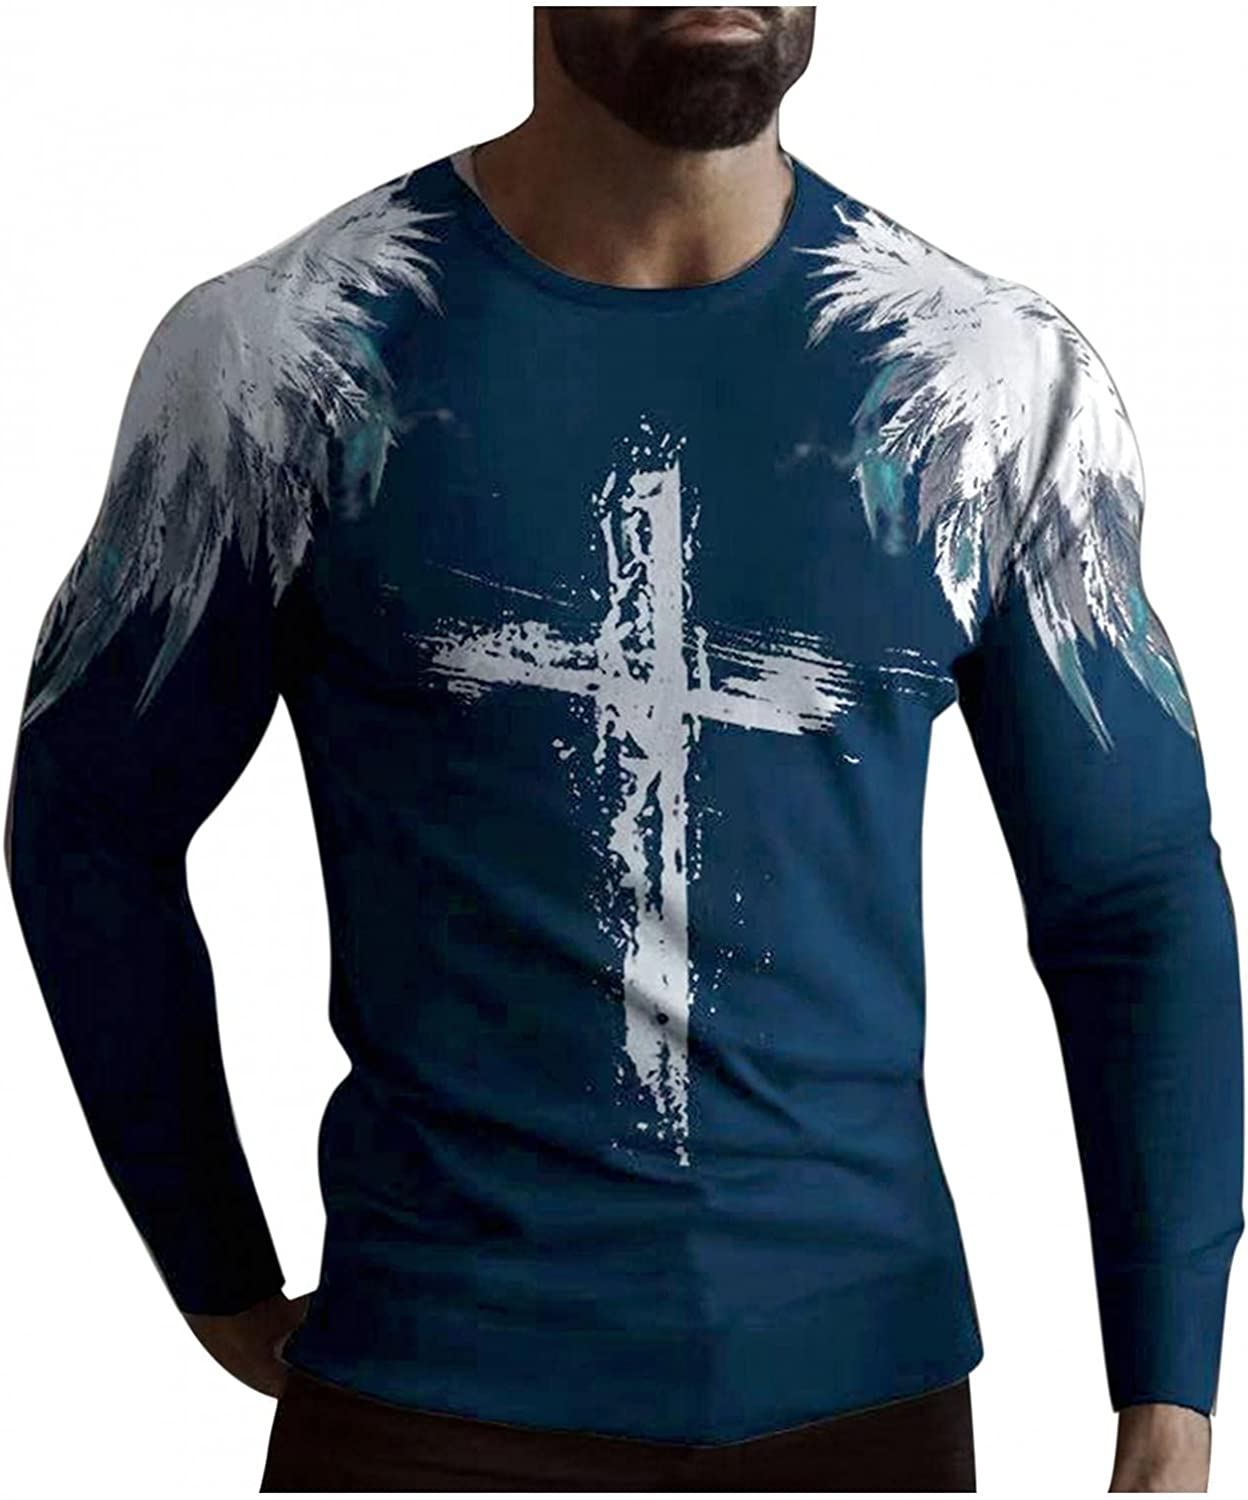 Shirts for Men Men's Casual Cross Feather Print Long-sleeve Tee Shirt for Men Top Round Neck T-Shirt Blouse Polo Mens Shirts